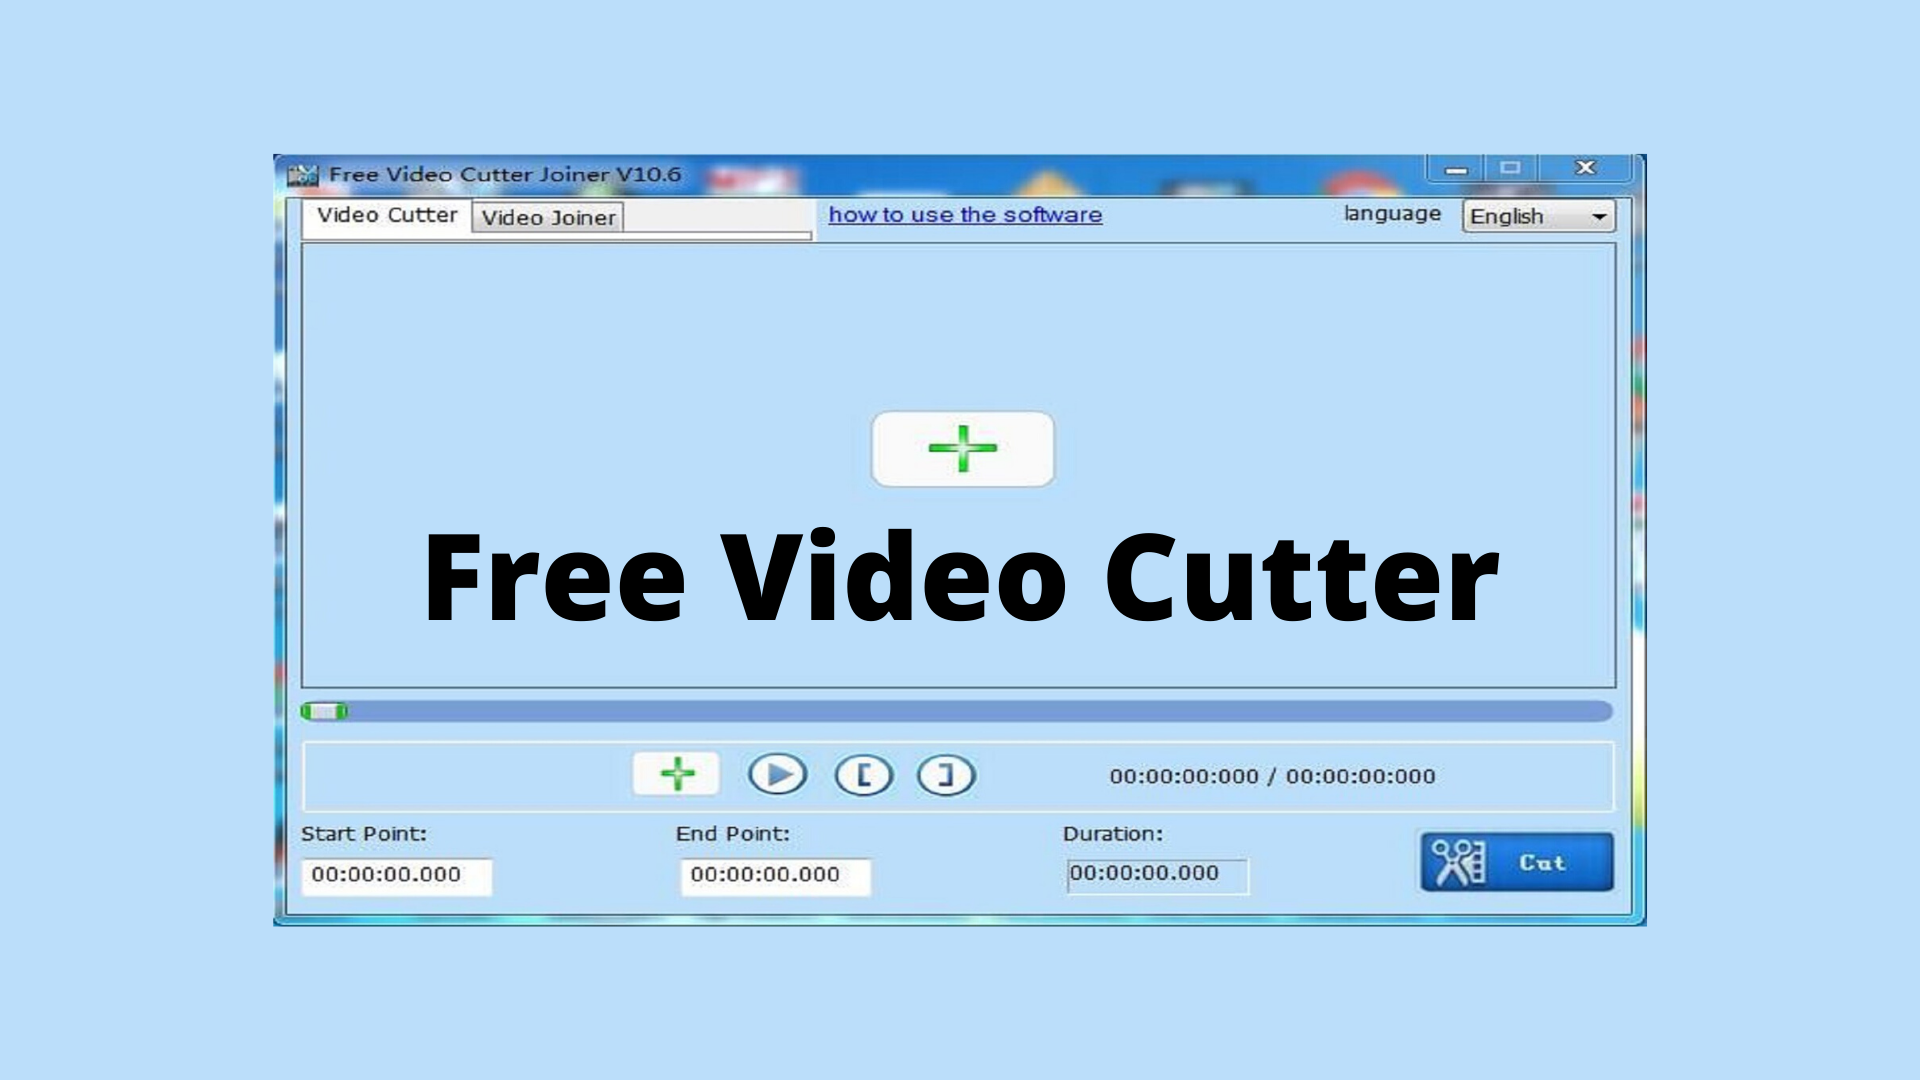 Free Video Cutter 11 Apps For Cutting Large Video Files Jmexclusives